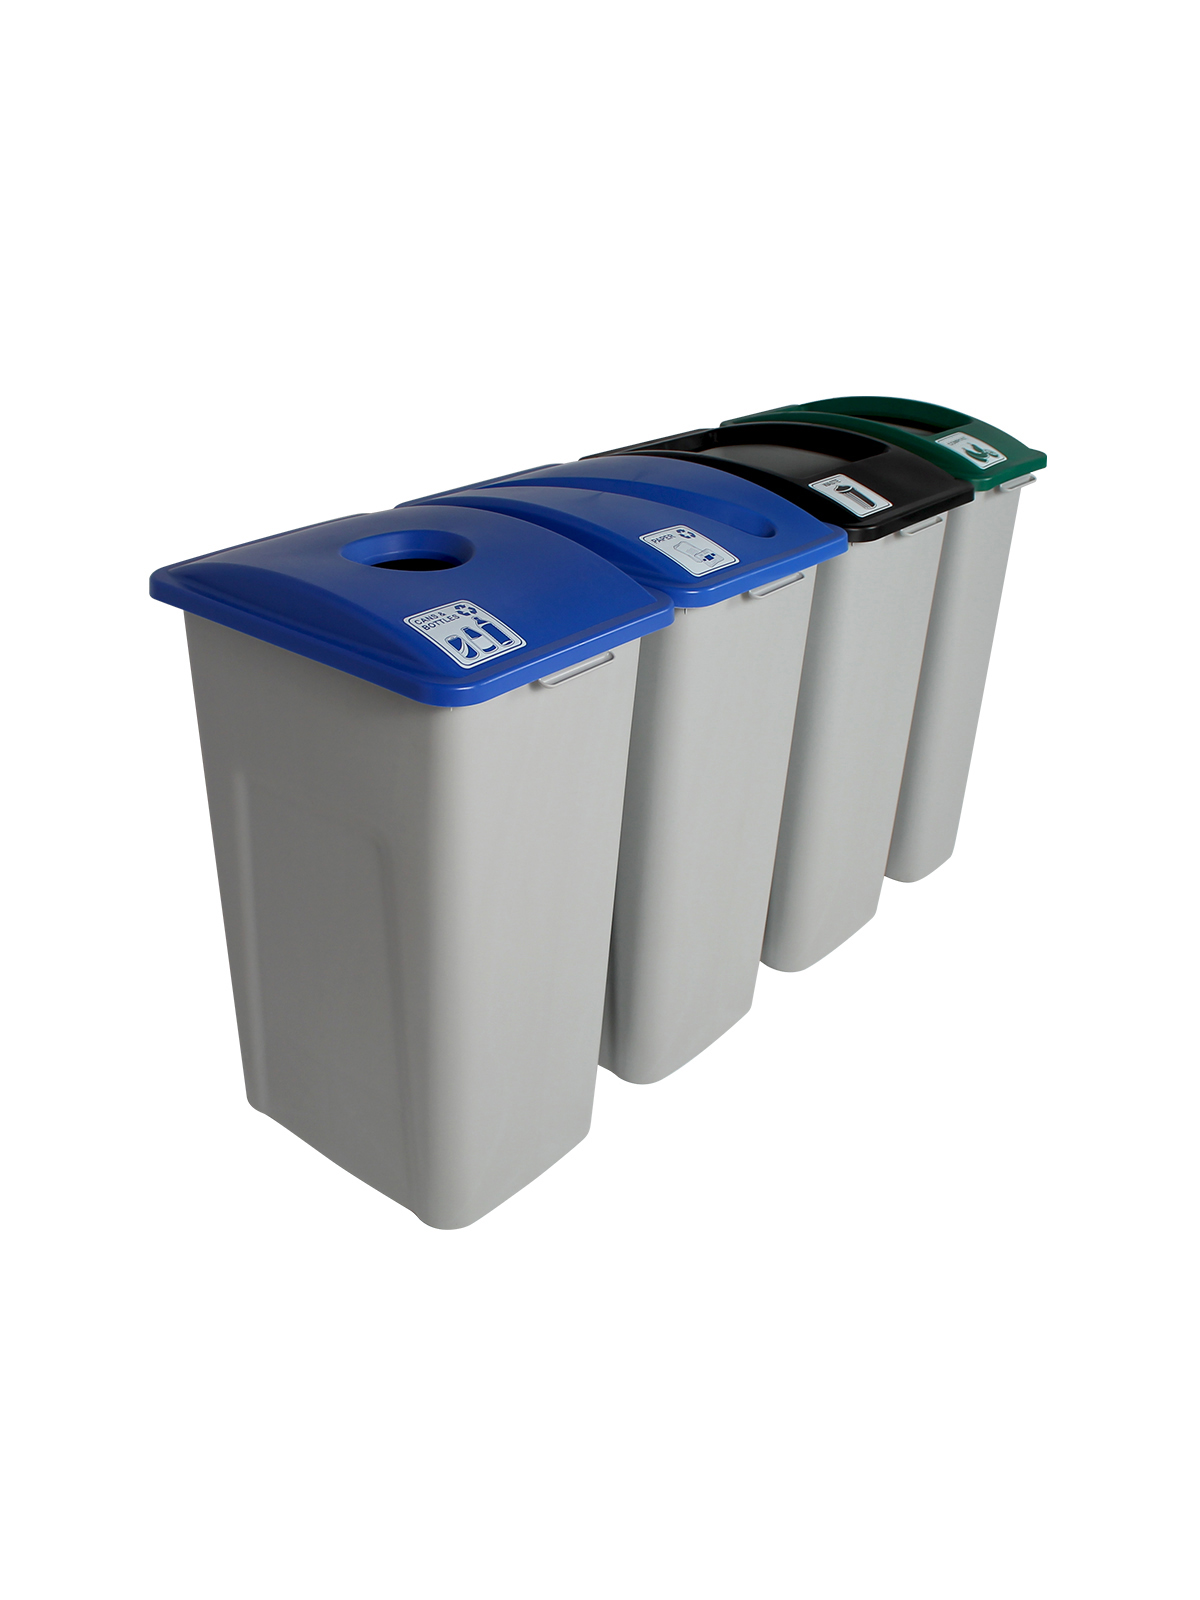 WASTE WATCHER XL - Quad - Cans & Bottles-Paper-Compost-Waste - Circle-Slot-Full - Grey-Blue-Blue-Green-Black